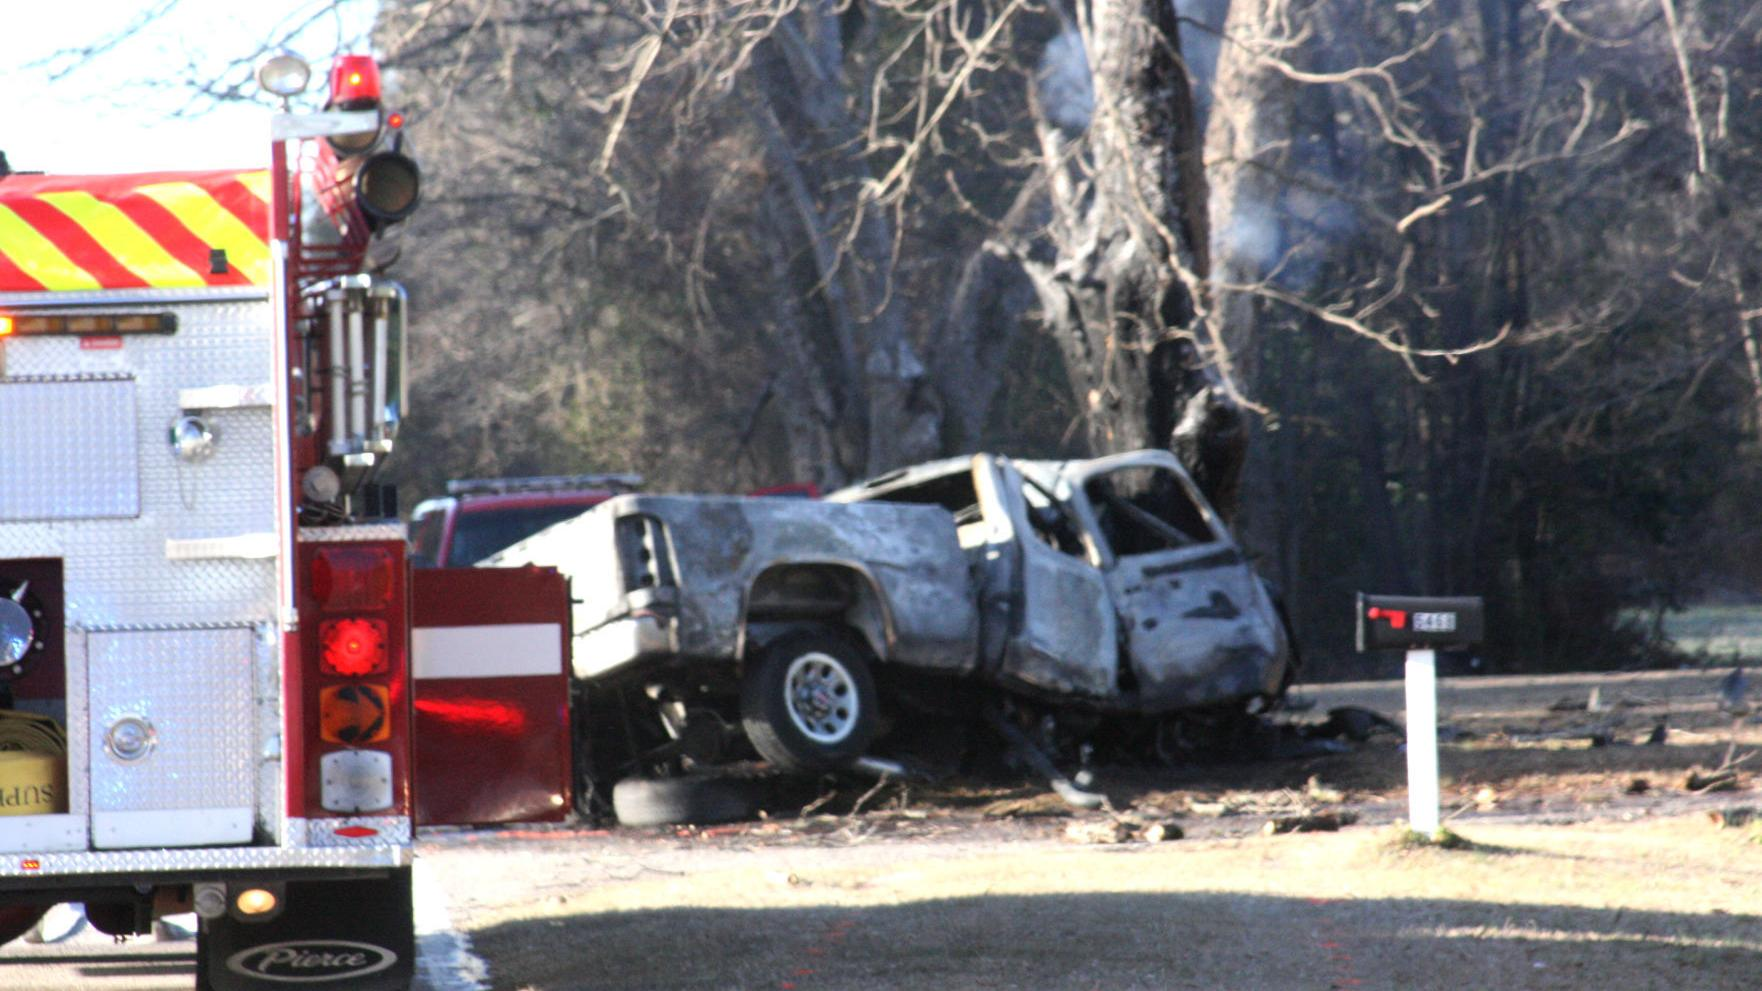 http://thetandd.com/news/local/driver-dies-after-truck-strikes-tree/article_56acb213-cb42-530f-8392-dc433b18111f.html